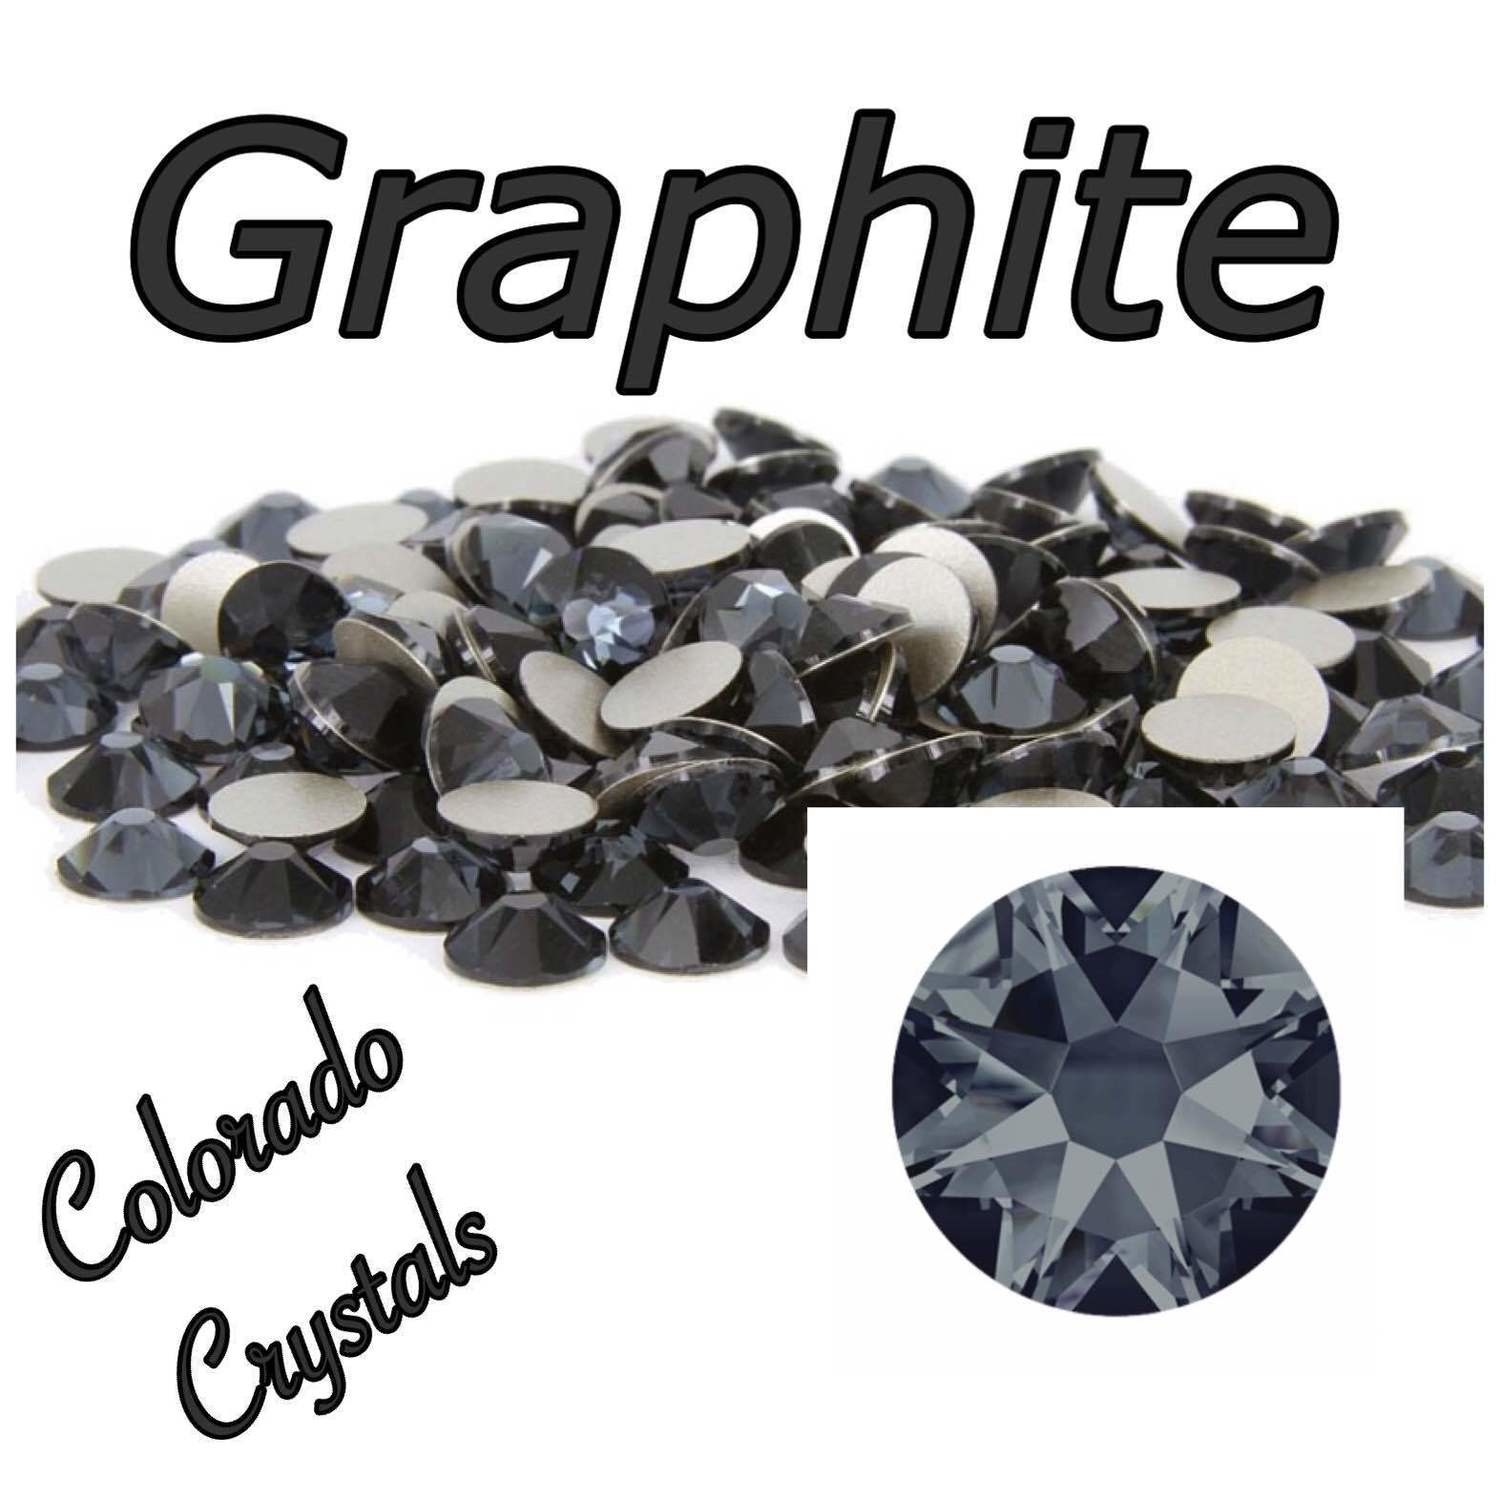 Graphite 20ss 2088 limited